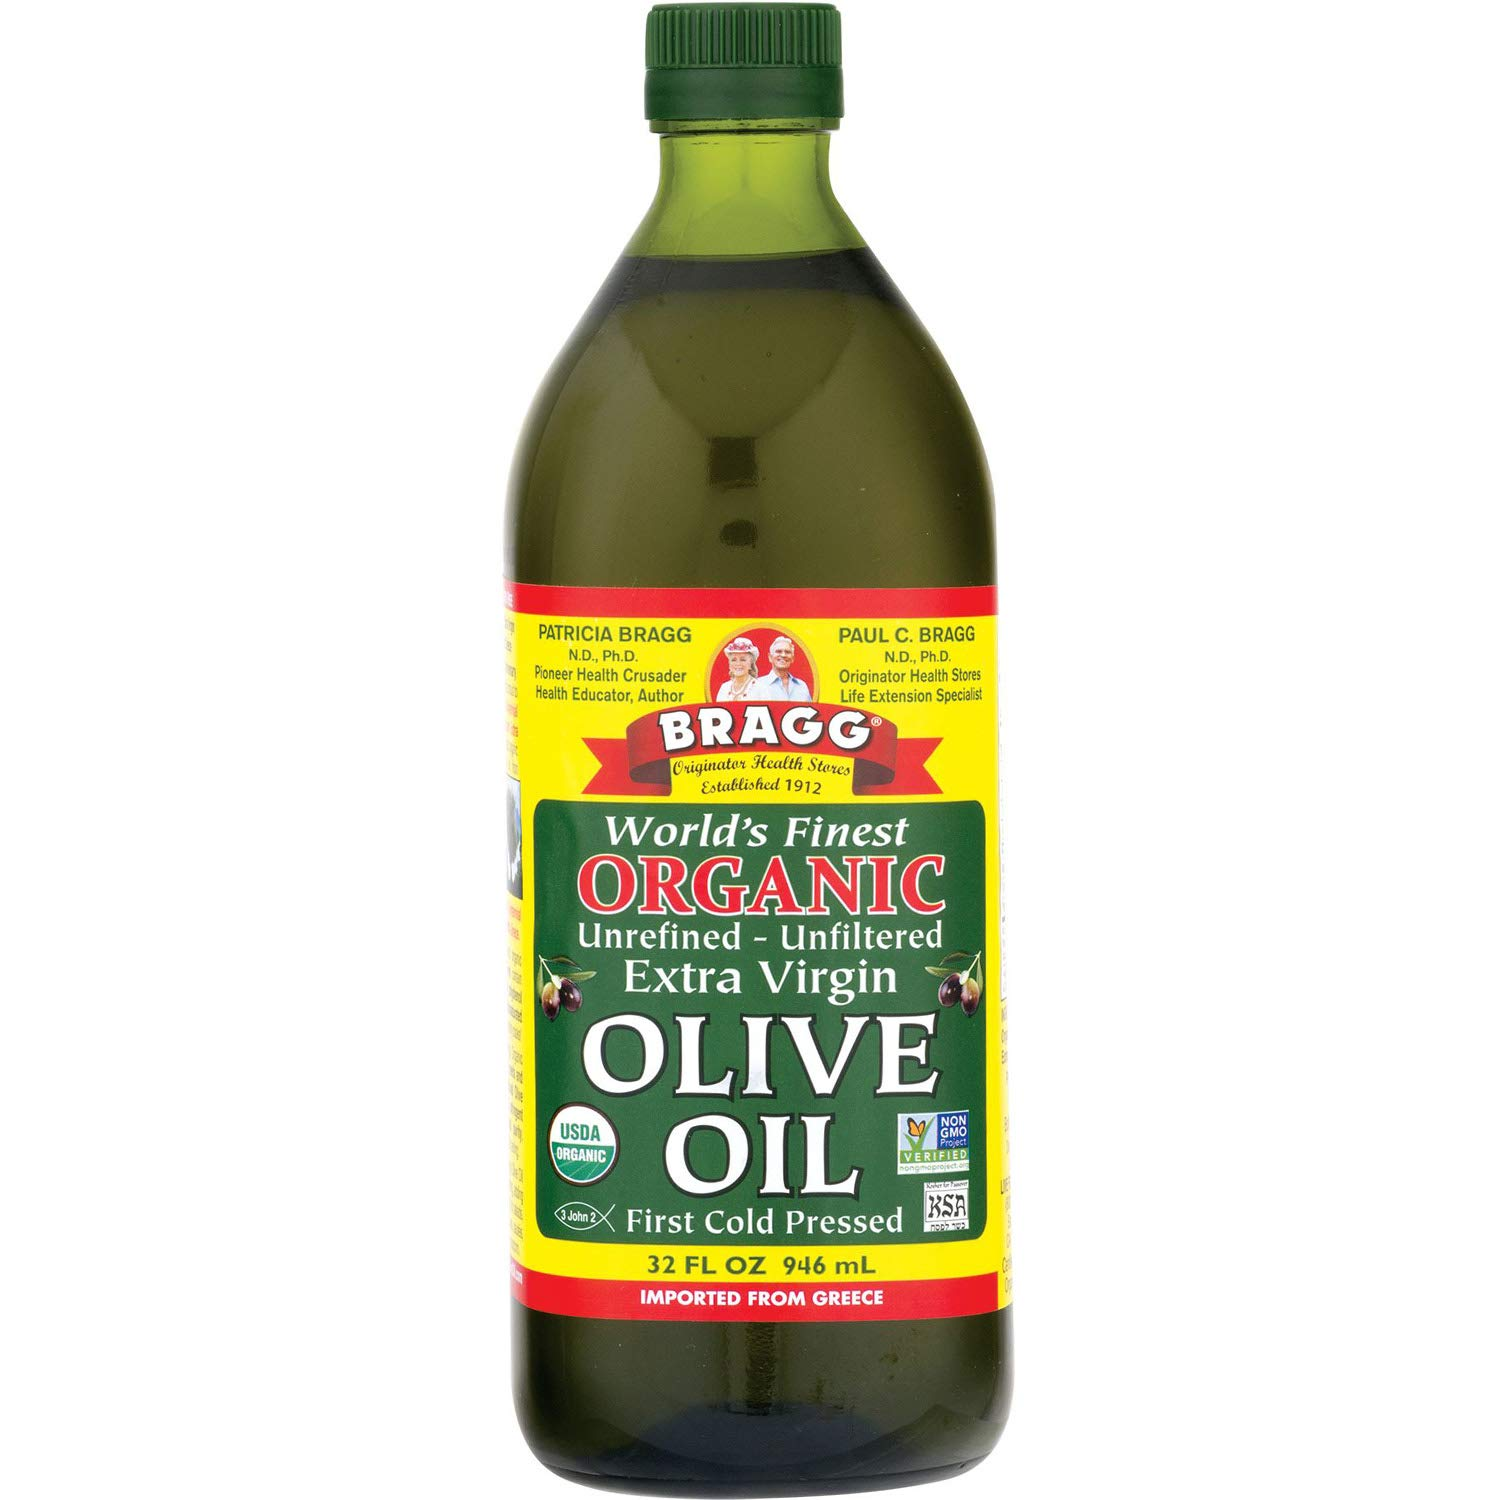 Bragg Organic Extra Virgin Olive Oil 32oz